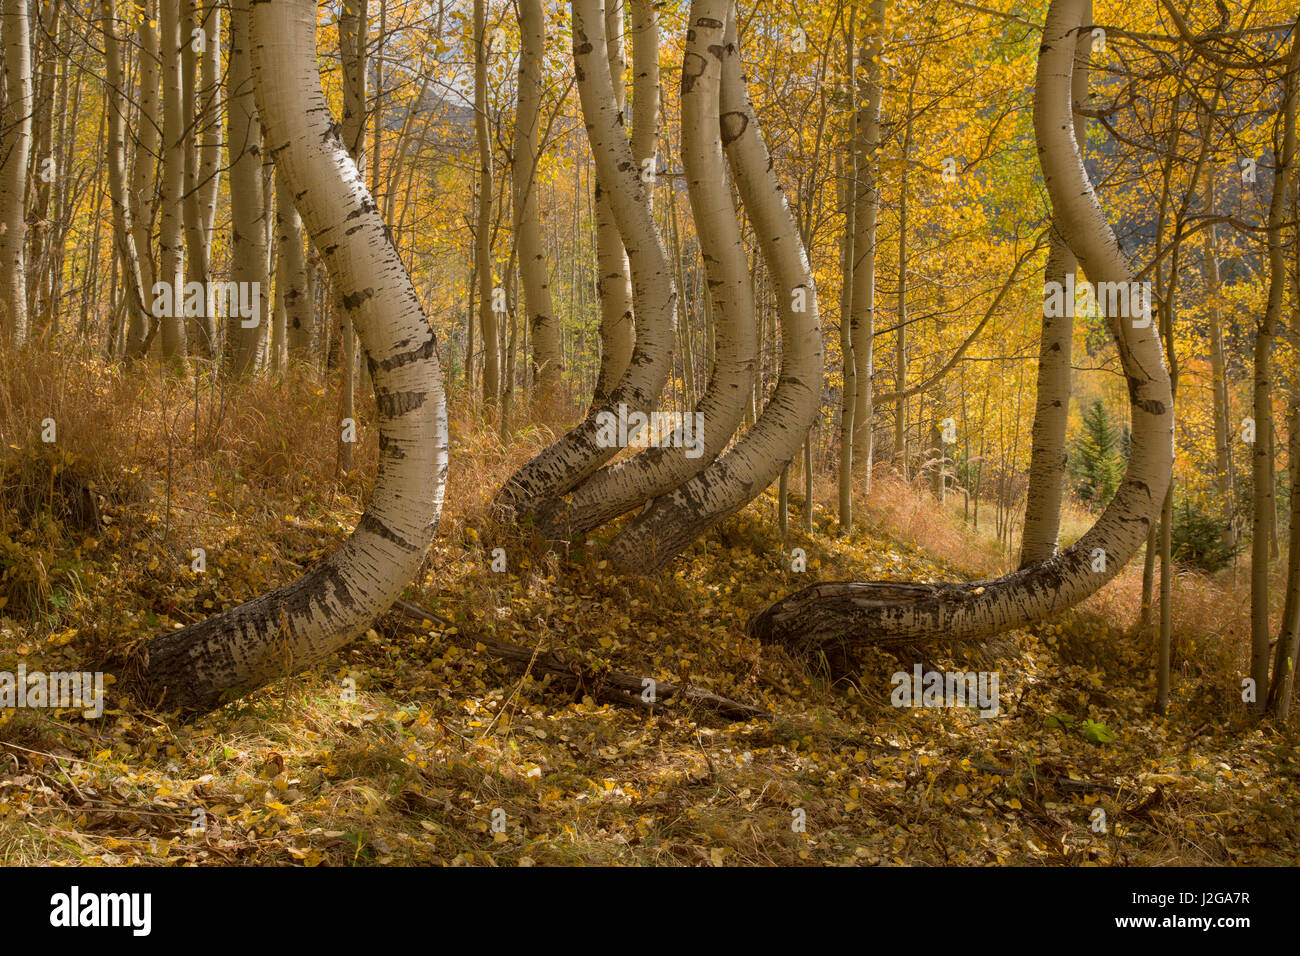 USA, Colorado, Uncompahgre National Forest. Symmetrically deformed aspen trunks. Credit as: Don Grall / Jaynes Gallery - Stock Image